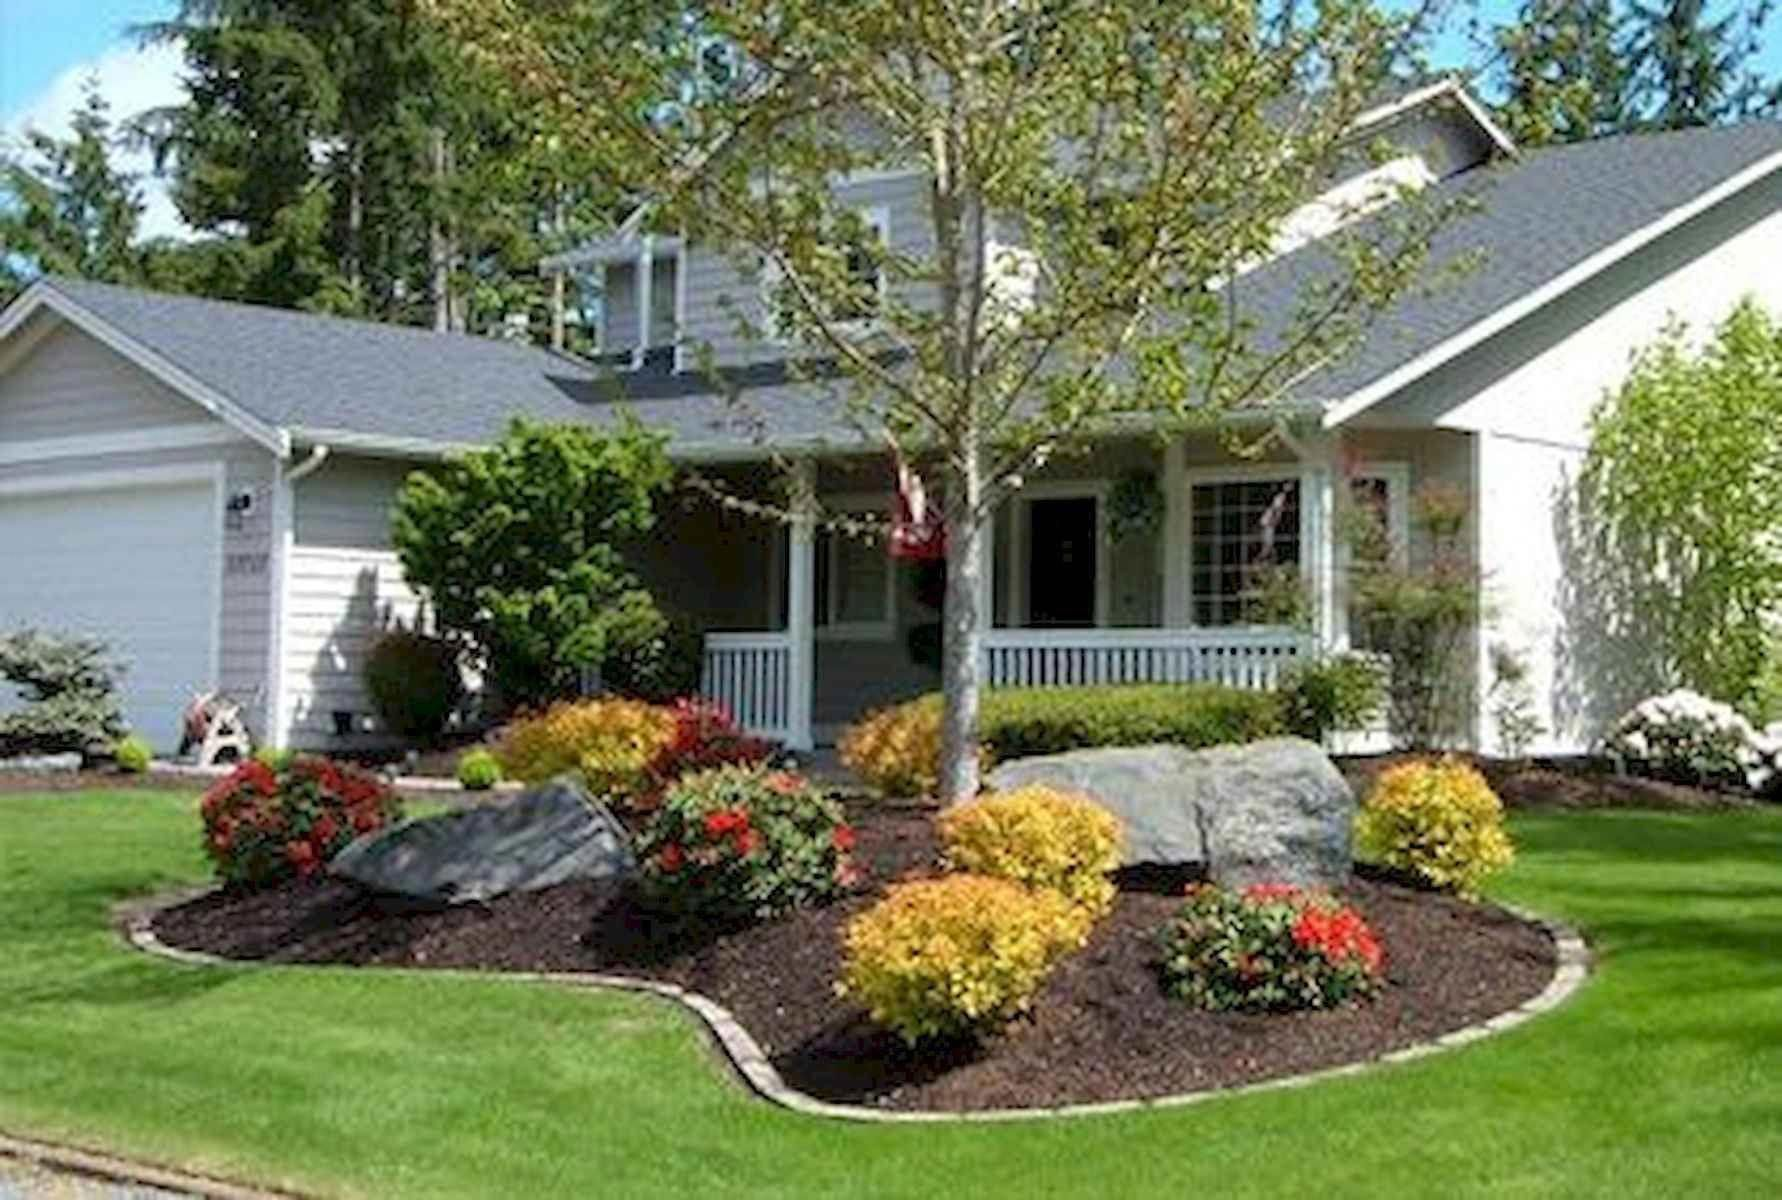 90 Simple and Beautiful Front Yard Landscaping Ideas on A ... on Luxury Front Yard Landscape id=62430